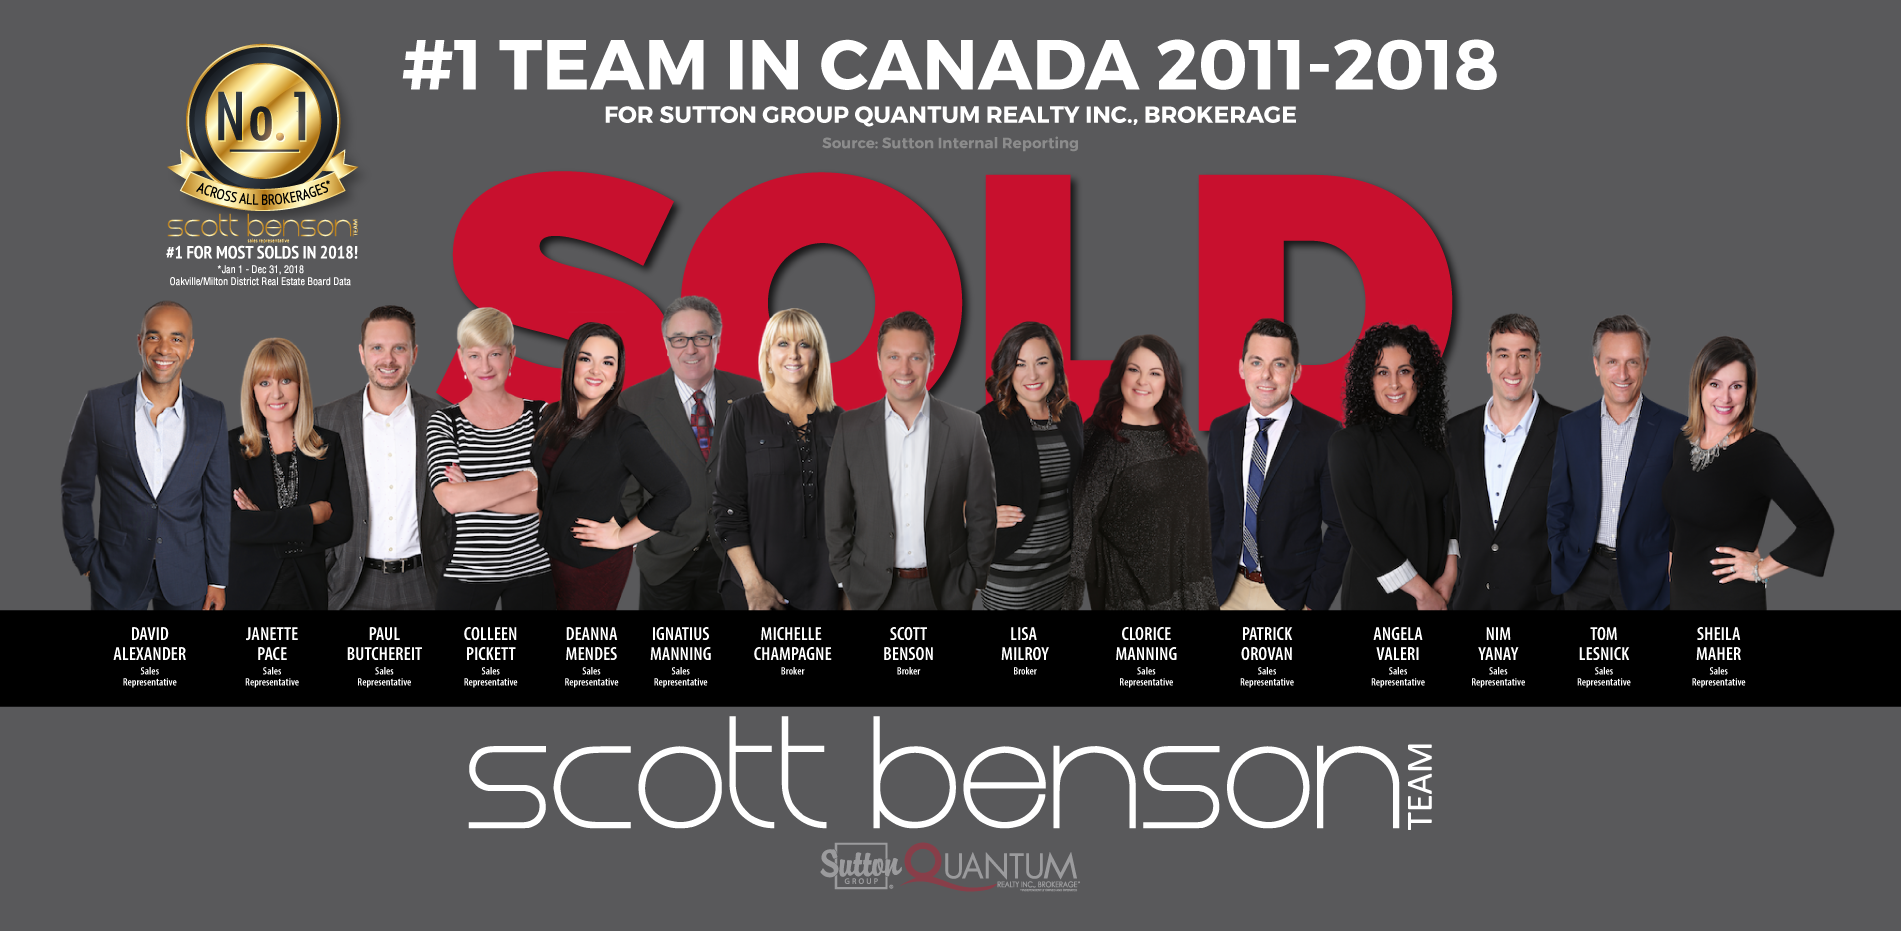 Scott Benson Team - #1 Team in Canada 2011-2018